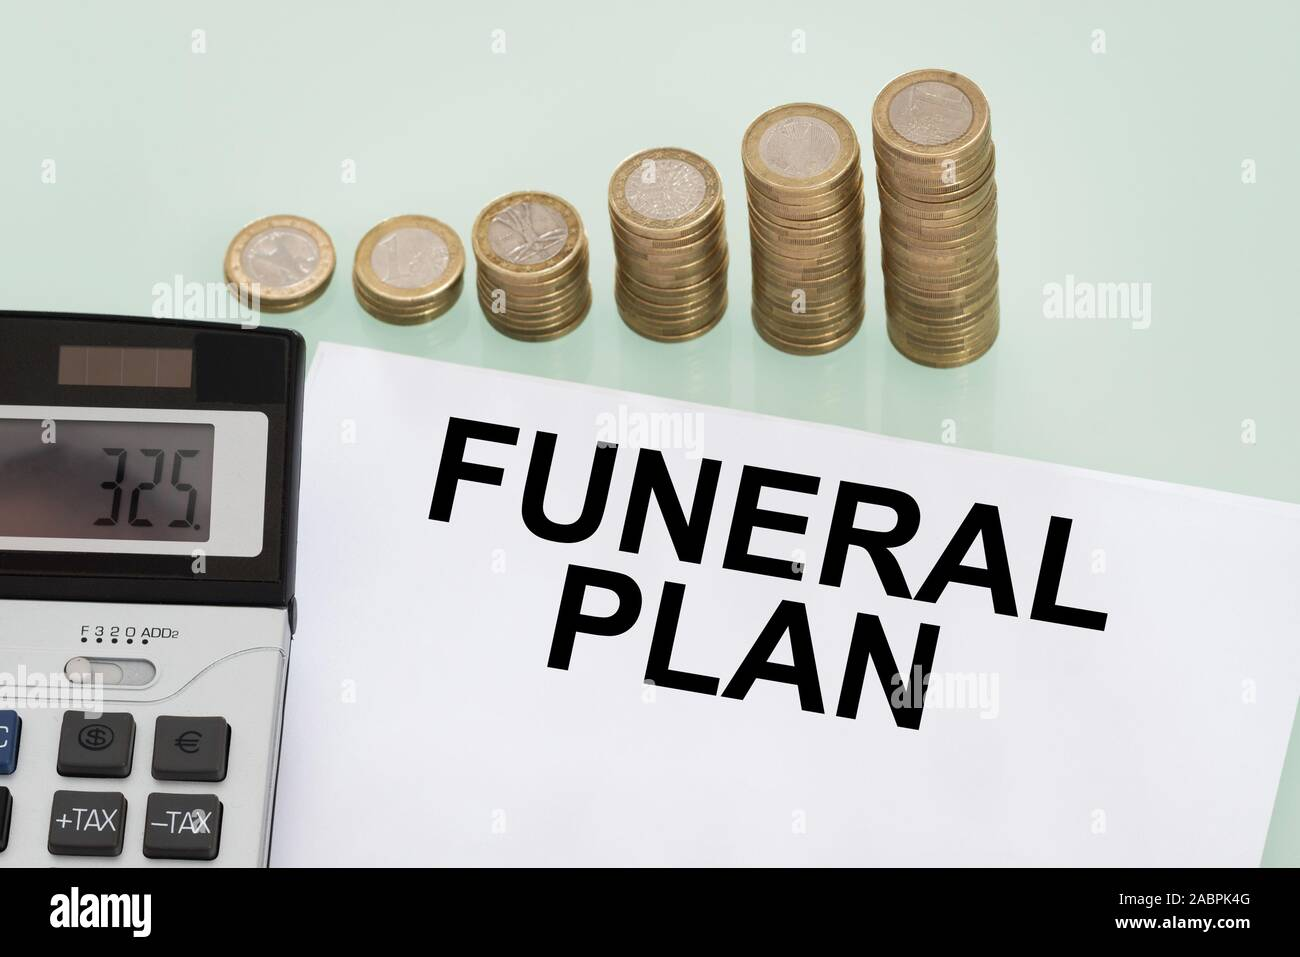 Funeral Plan Papers, Stack Of Coins And Calculator Stock Photo